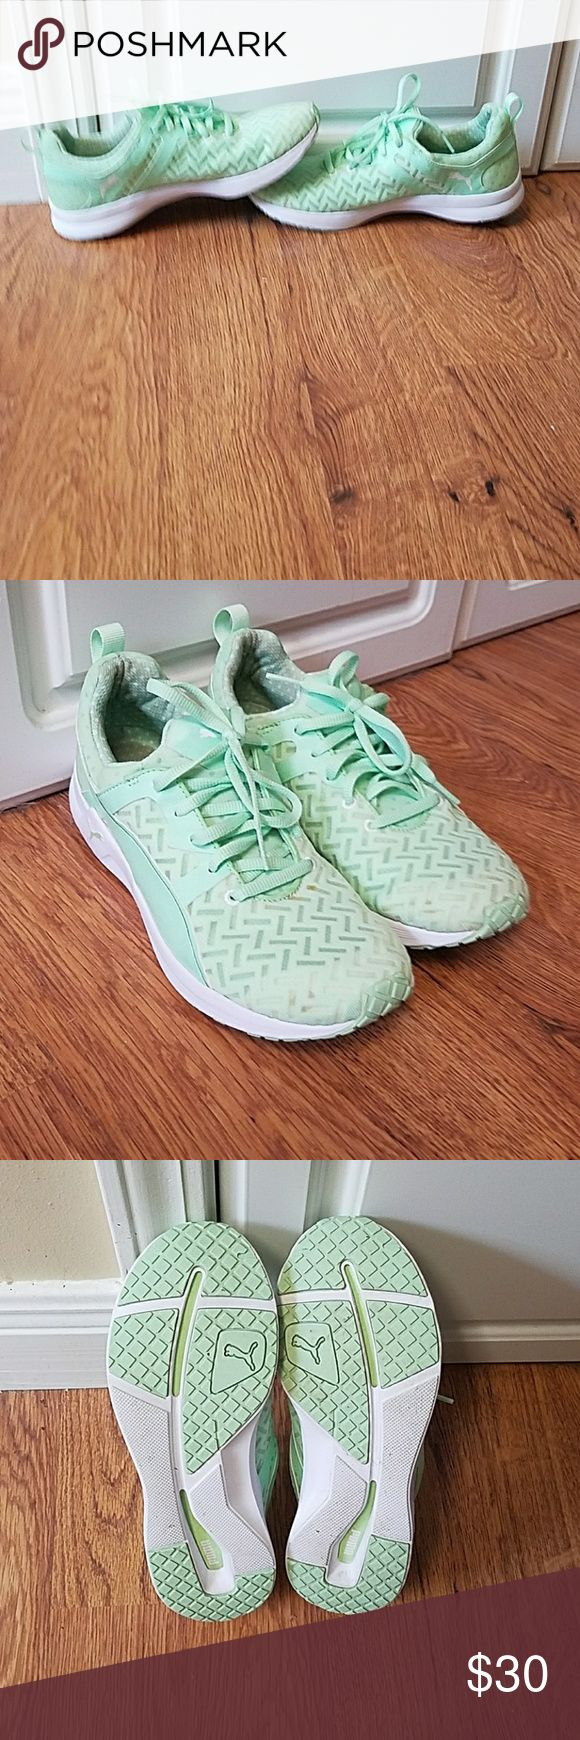 PULSE XT PWRCOOL Women's TRAINING SHOES USED Puma shoes. Worn maybe 5 times. Small for stain on toe area. Good shape. Puma Shoes Athletic Shoes